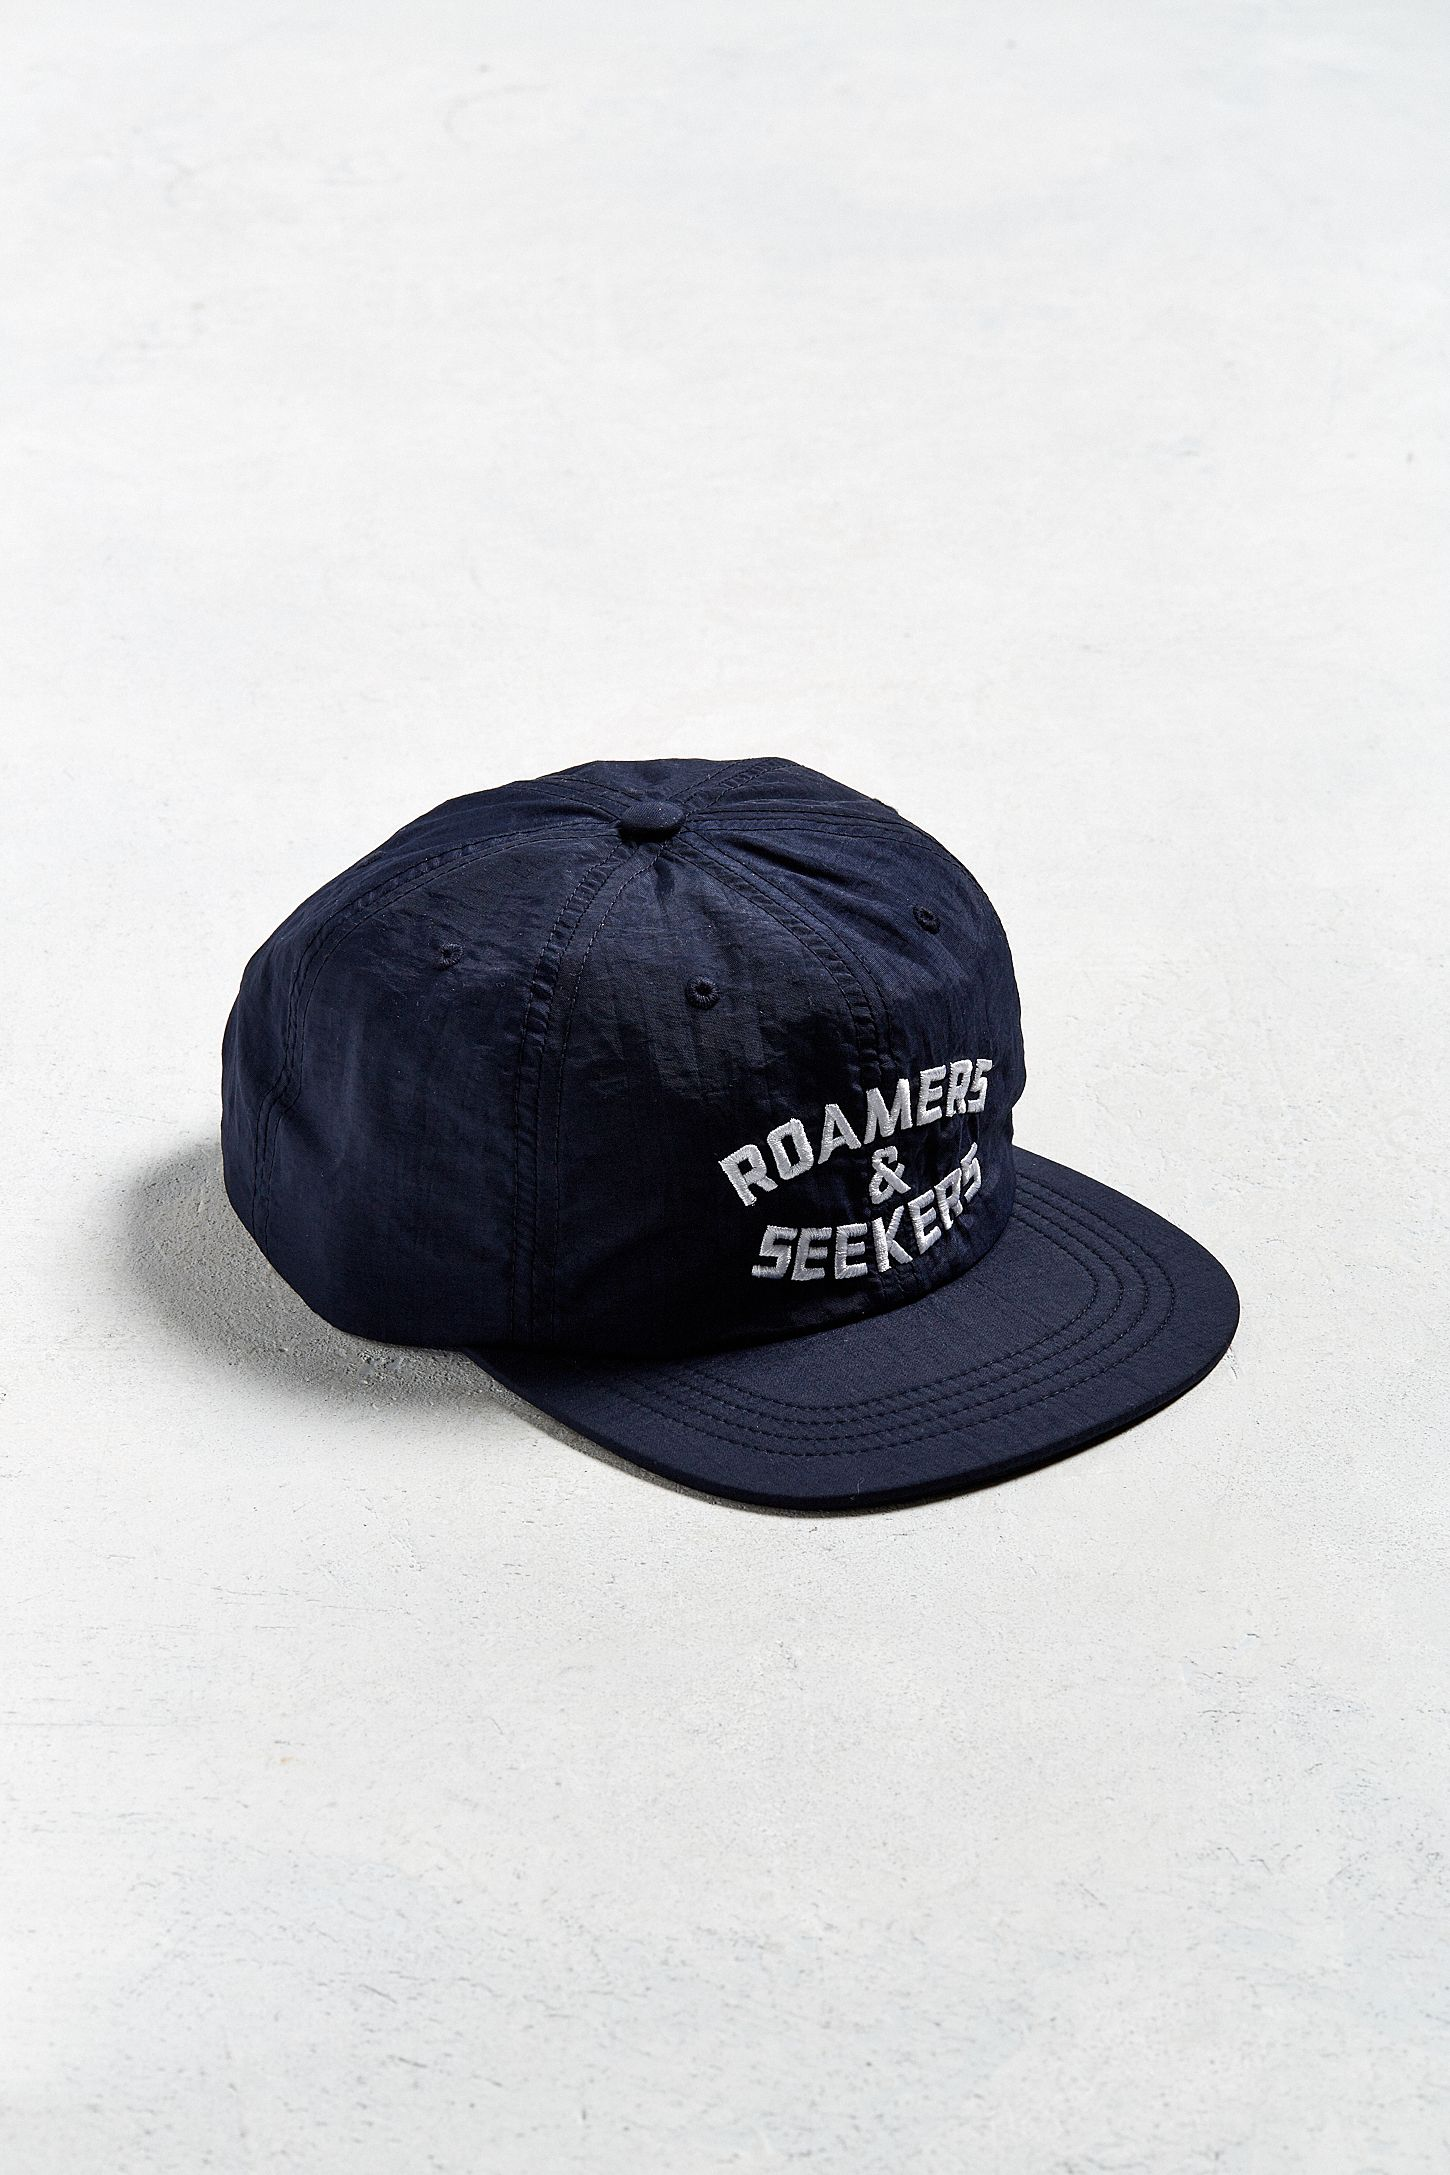 Poler Roamers And Seekers Nylon Baseball Hat  5cdcc16a5ffd